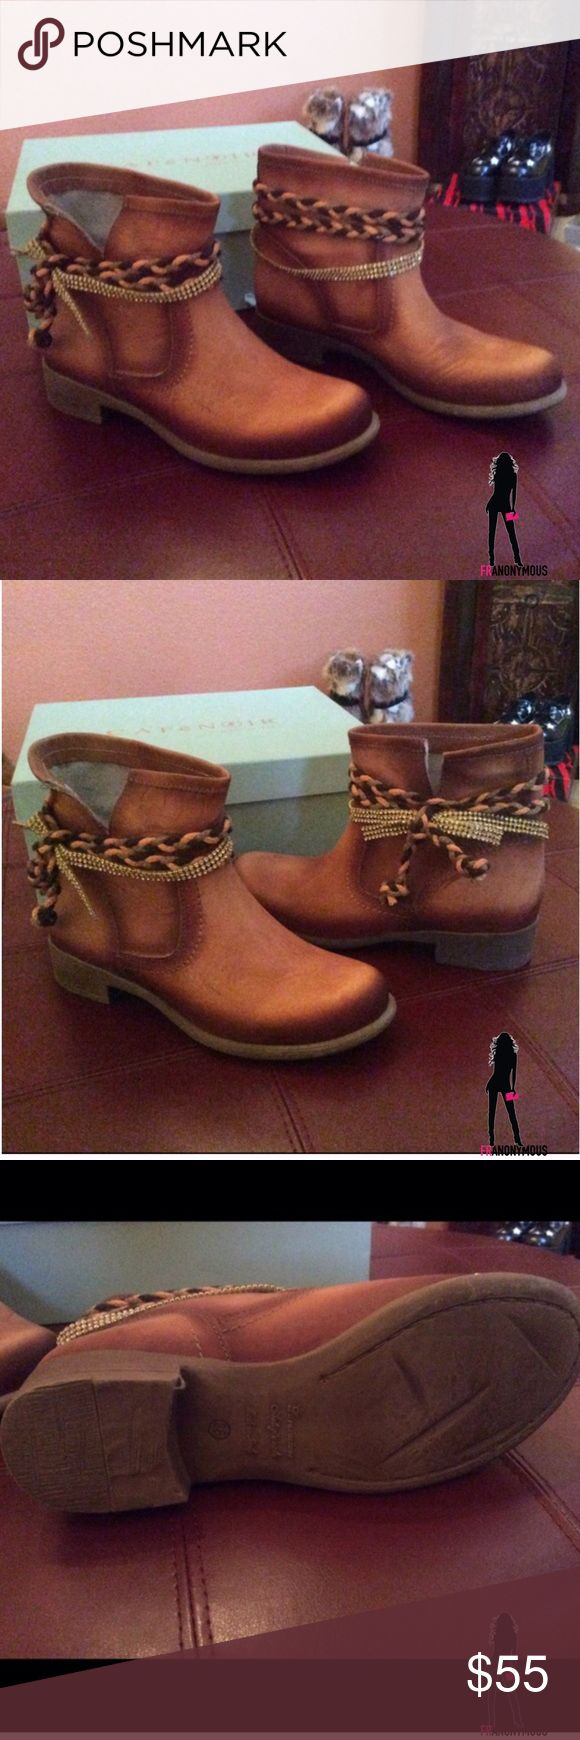 Italian Leather Ankle Boots 7.5 (38) Brown leather ankle boots. Made in Italy. These have a rope and rhinestone trim and are do fabulous. I never wore them and am fighting with myself to keep. They are the perfect bootie! Size 38 Eur fits 7.5 Shoes Ankle Boots & Booties